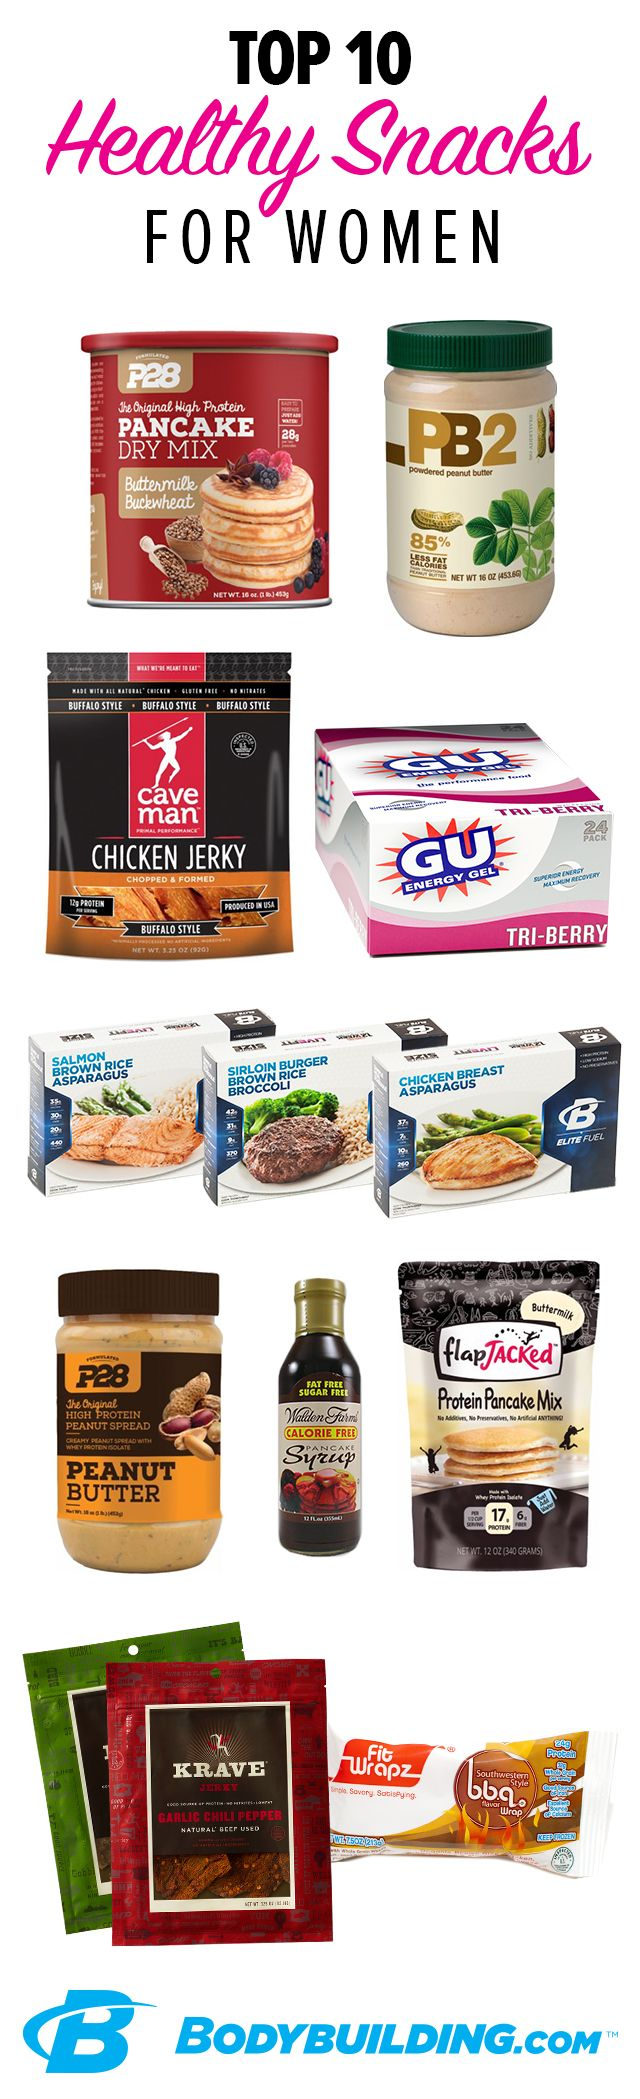 Top 10 Healthy Snacks For Women You Can T Build Muscle Get Lean And Stay Energized Without Clean Fuel 10 Healthy Snacks Top 10 Healthy Snacks Healthy Snacks